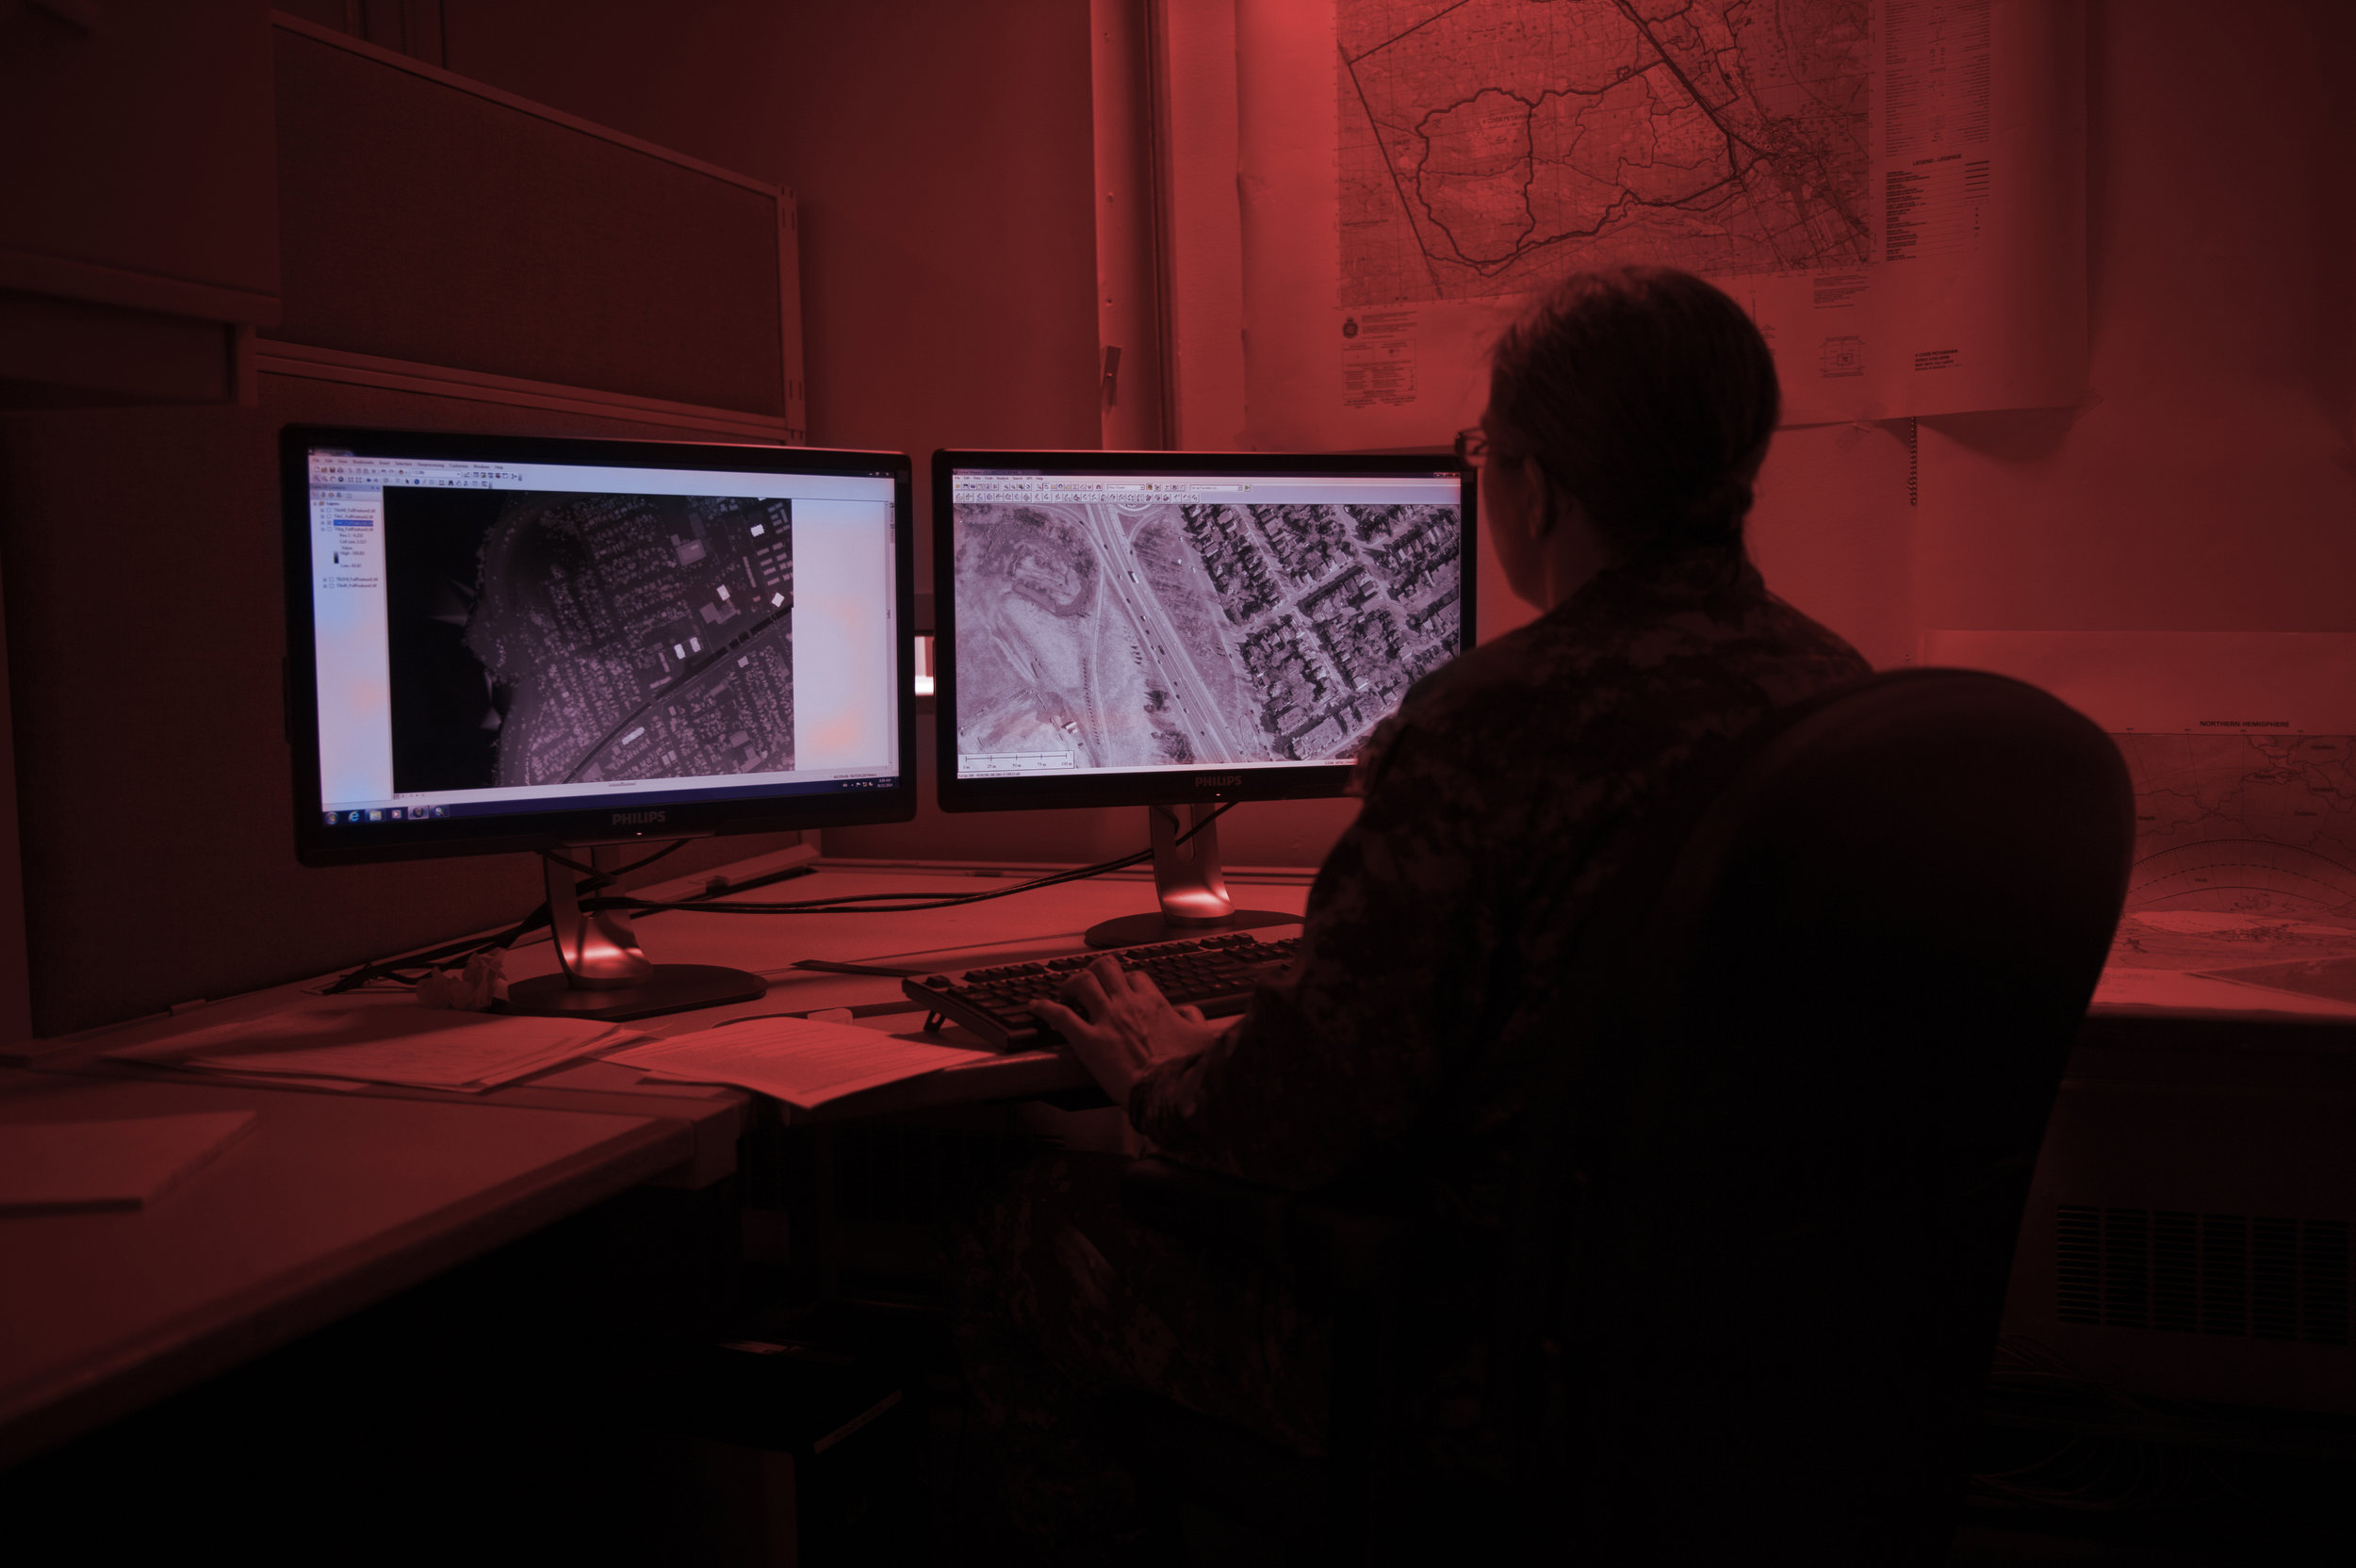 CFINTCOM provides credible, timely and integrated defence intelligence capabilities, products and services to support Canada's national security objectives. Using satellite technologies, the Map and Charting Establishment, one of CFINTCOM's five groups, provides timely and accurate mapping and charting support to DND, CAF and other government departments. (cpl francis gingras, dnd)